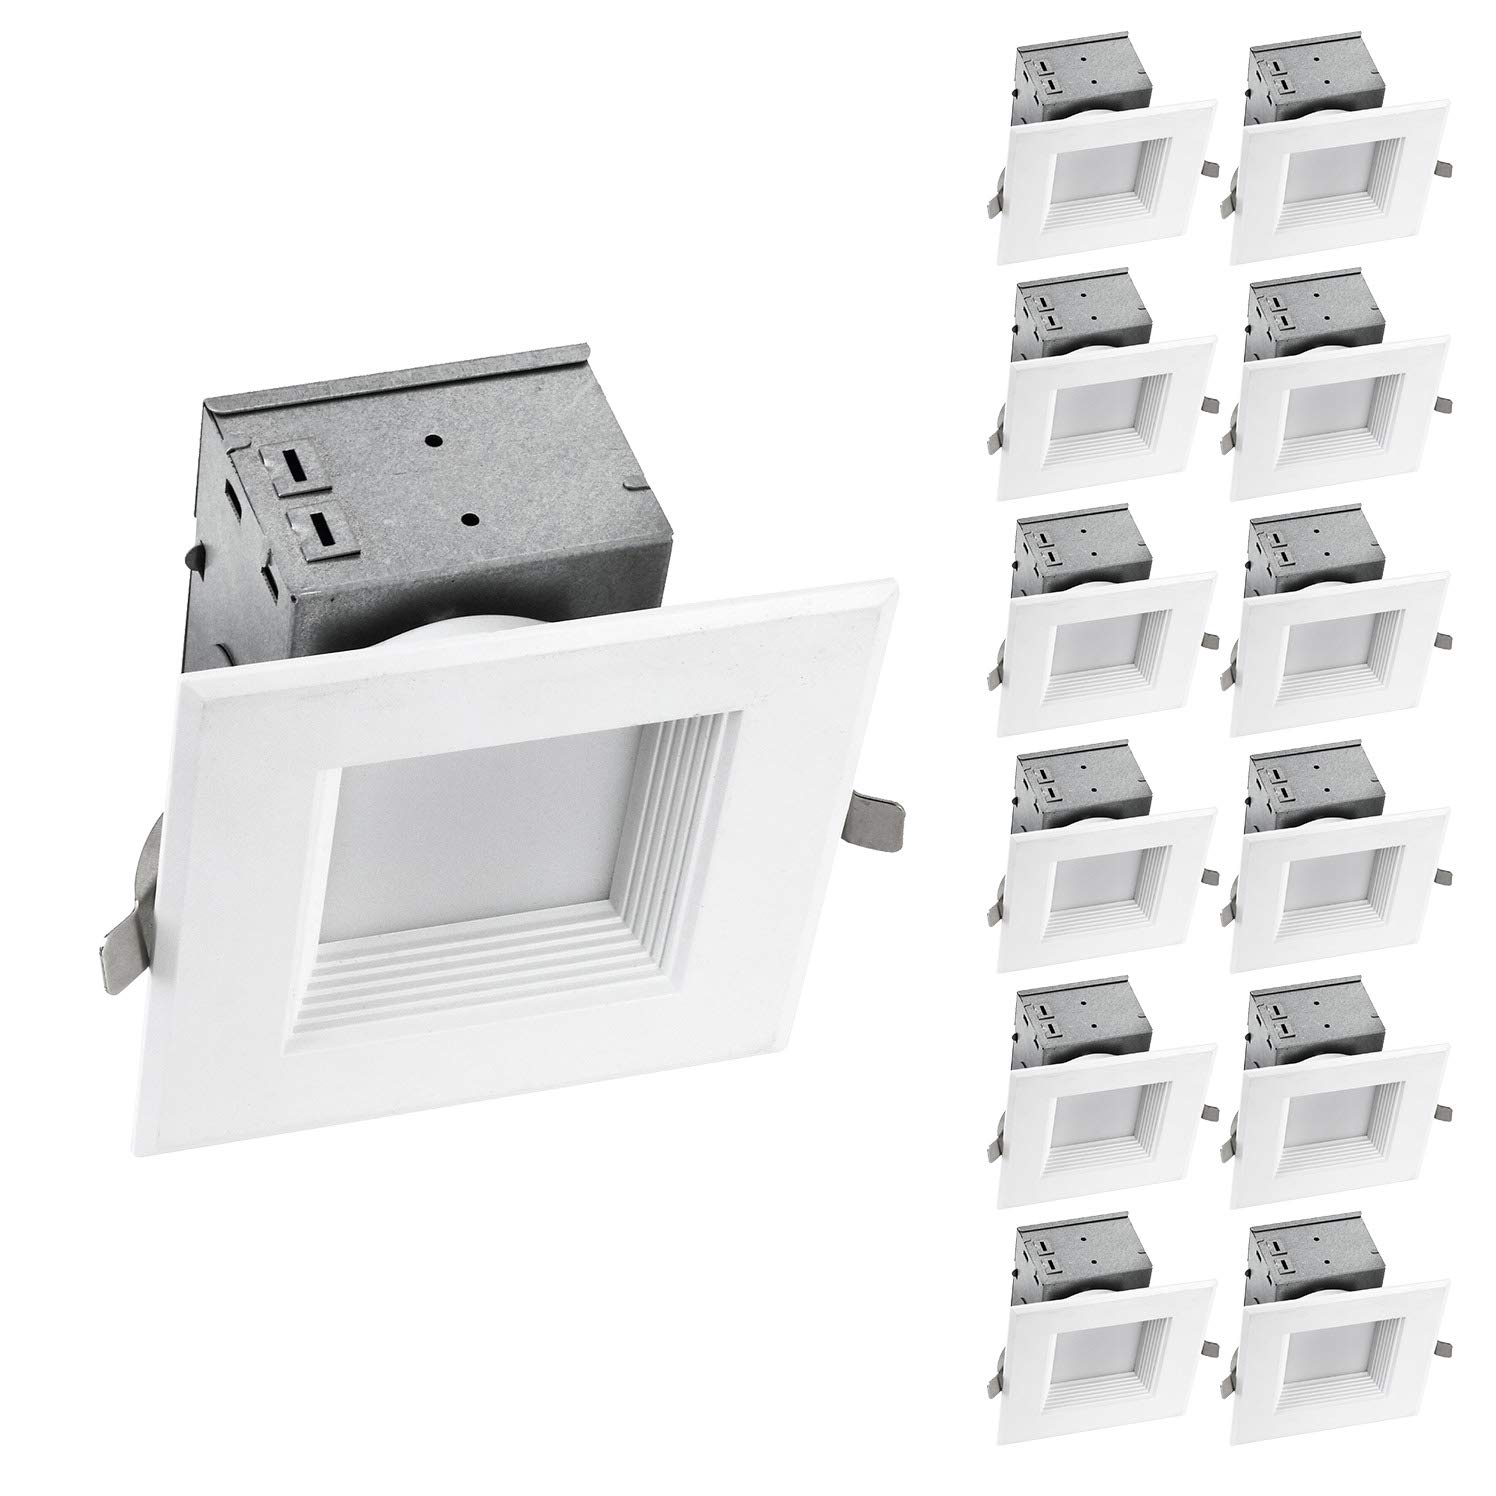 OSTWIN (12 Pack) 4 inch IC Rated Square LED Ceiling Recessed Downlight Kit With Junction box, Baffle Trim, Dimmable, 10W(75Watt Repl) 5000K Daylight, 700Lm. No Can Needed ETL and Energy Star Listed